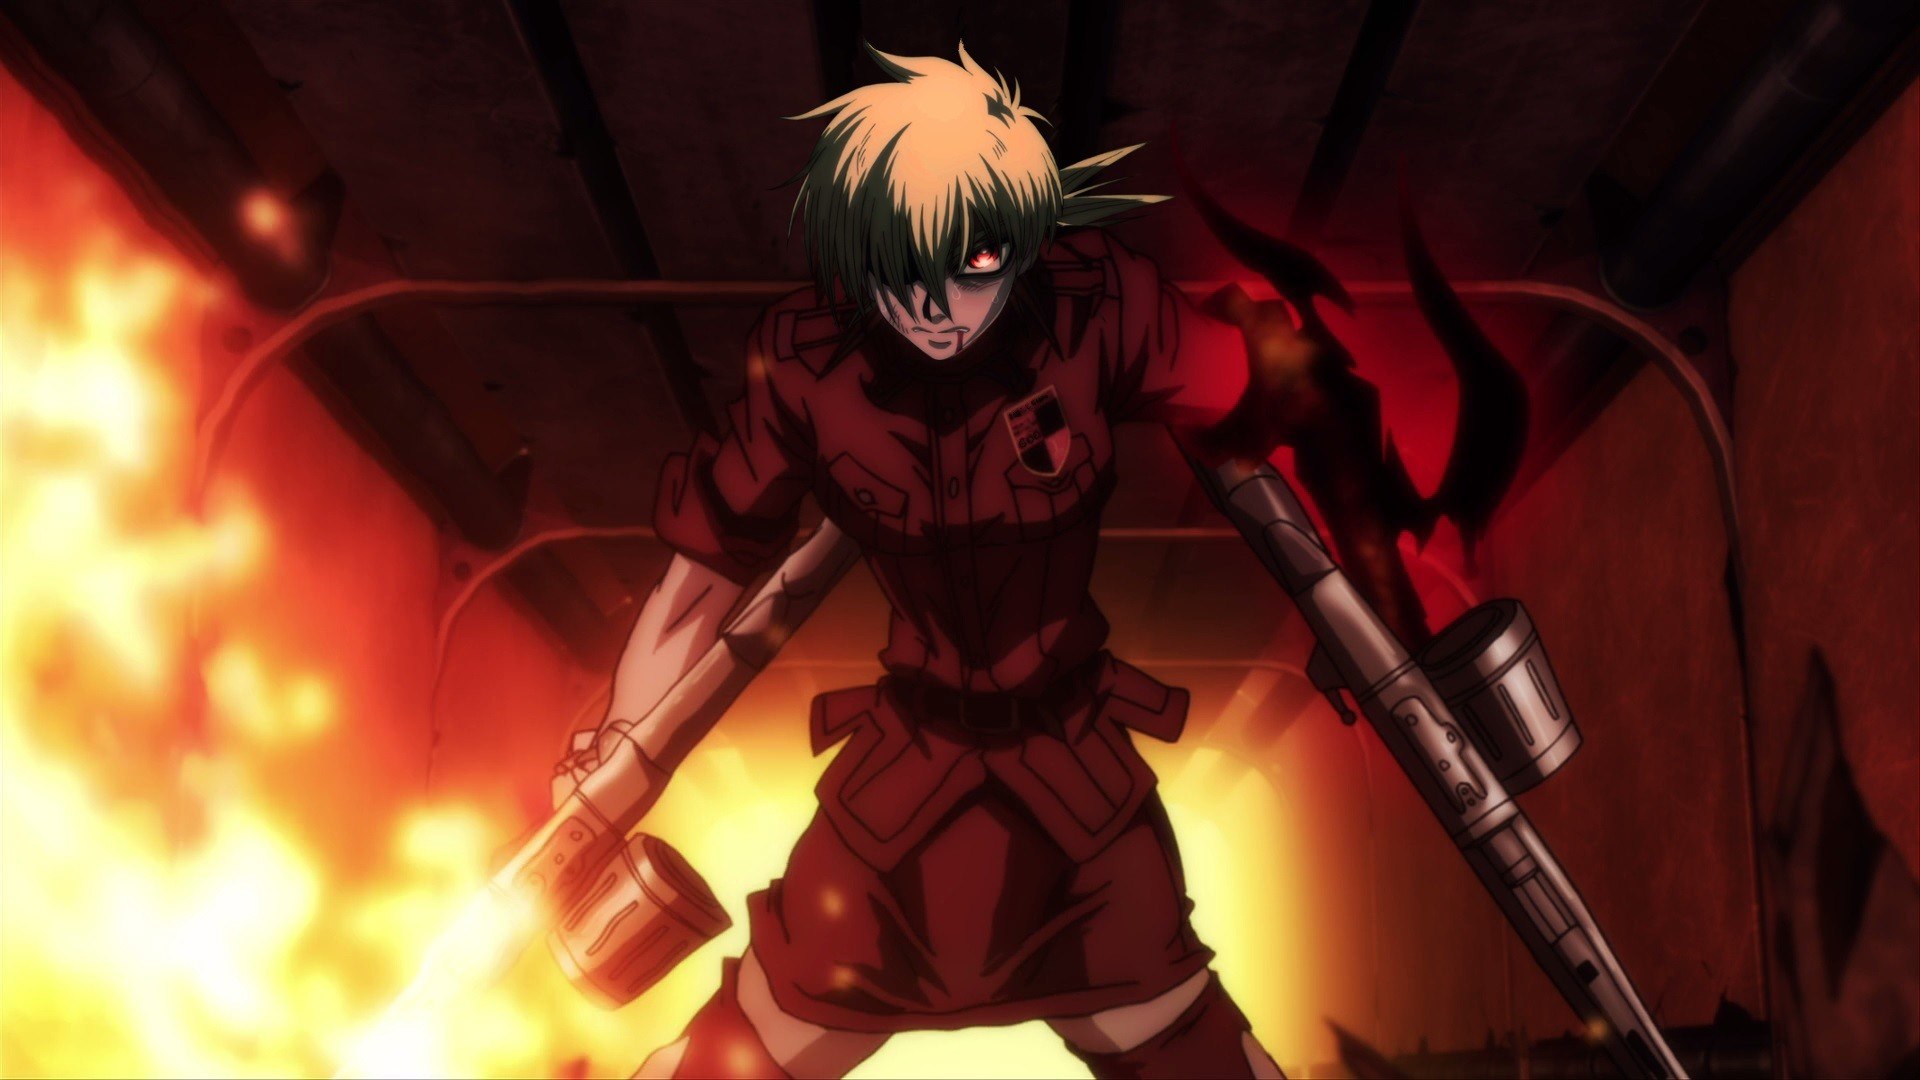 1920x1080 Hellsing Wallpapers With ID 7180 On Anime Category In HD Wallpaper Site Is One From Many